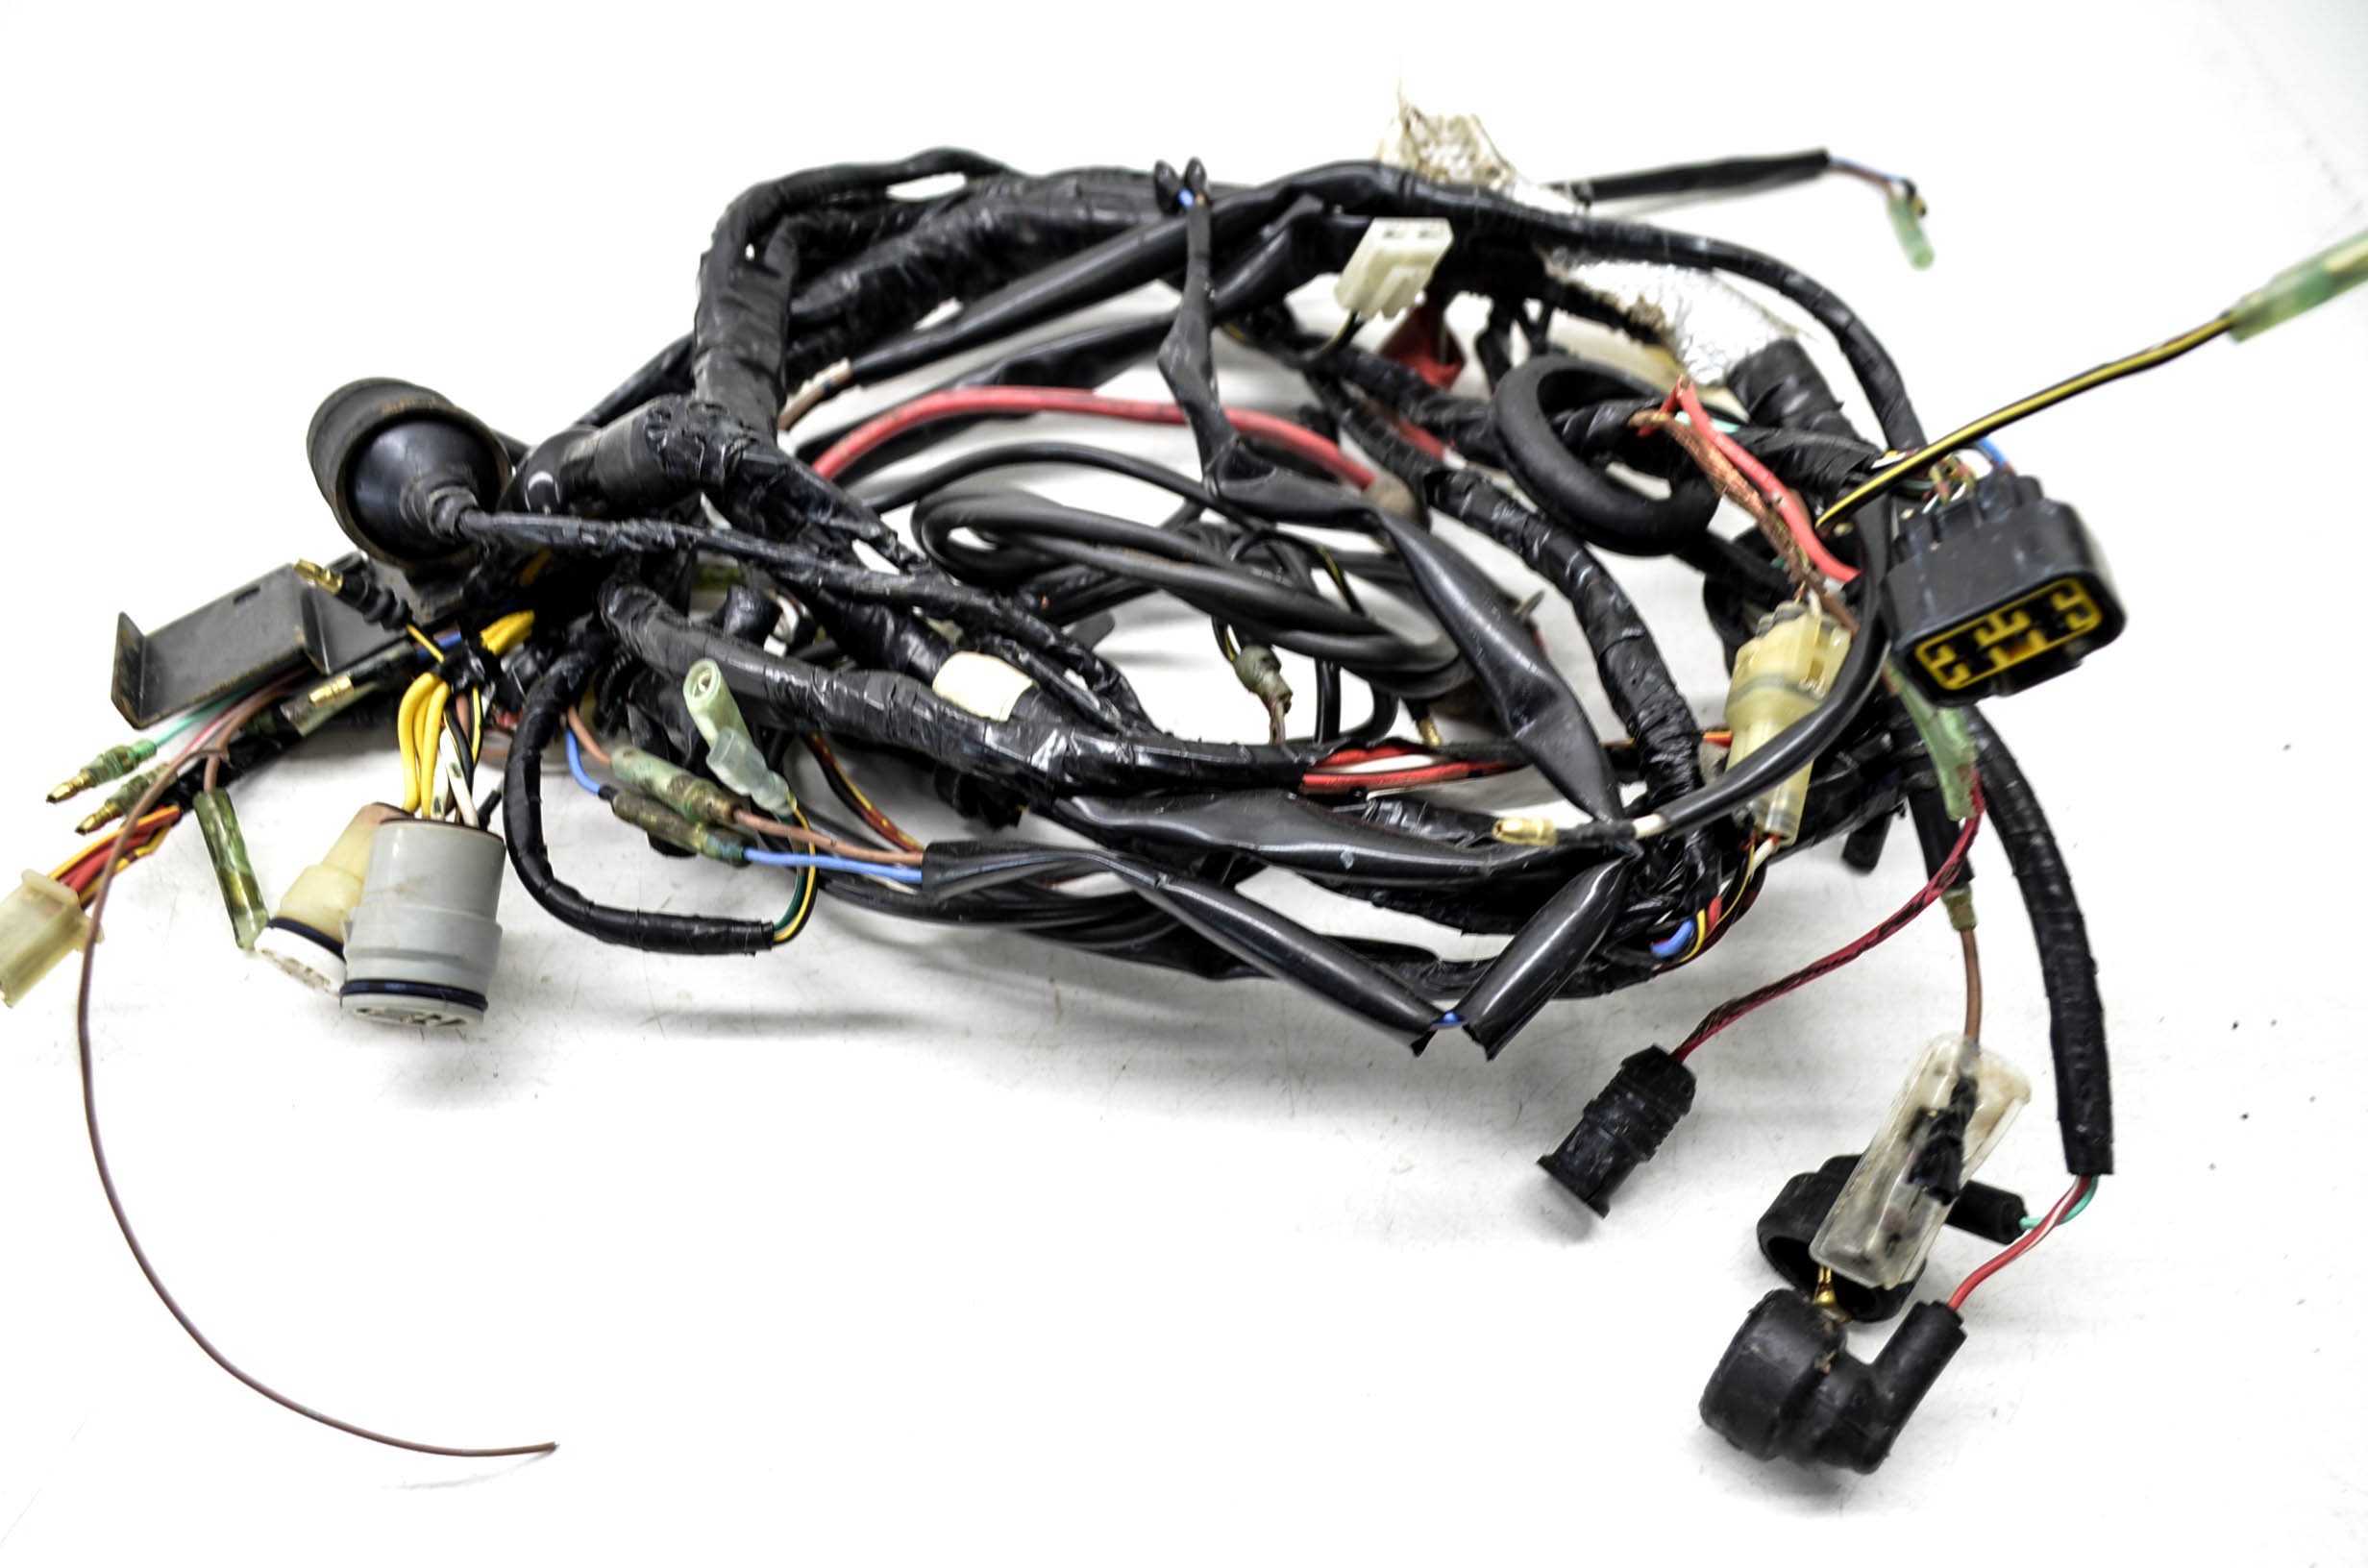 Wiring Harness Rhode Island Trusted Diagrams Obd0 To Obd1 Conversion 02 Kawasaki Prairie 300 4x4 Wire Electrical Kvf300a